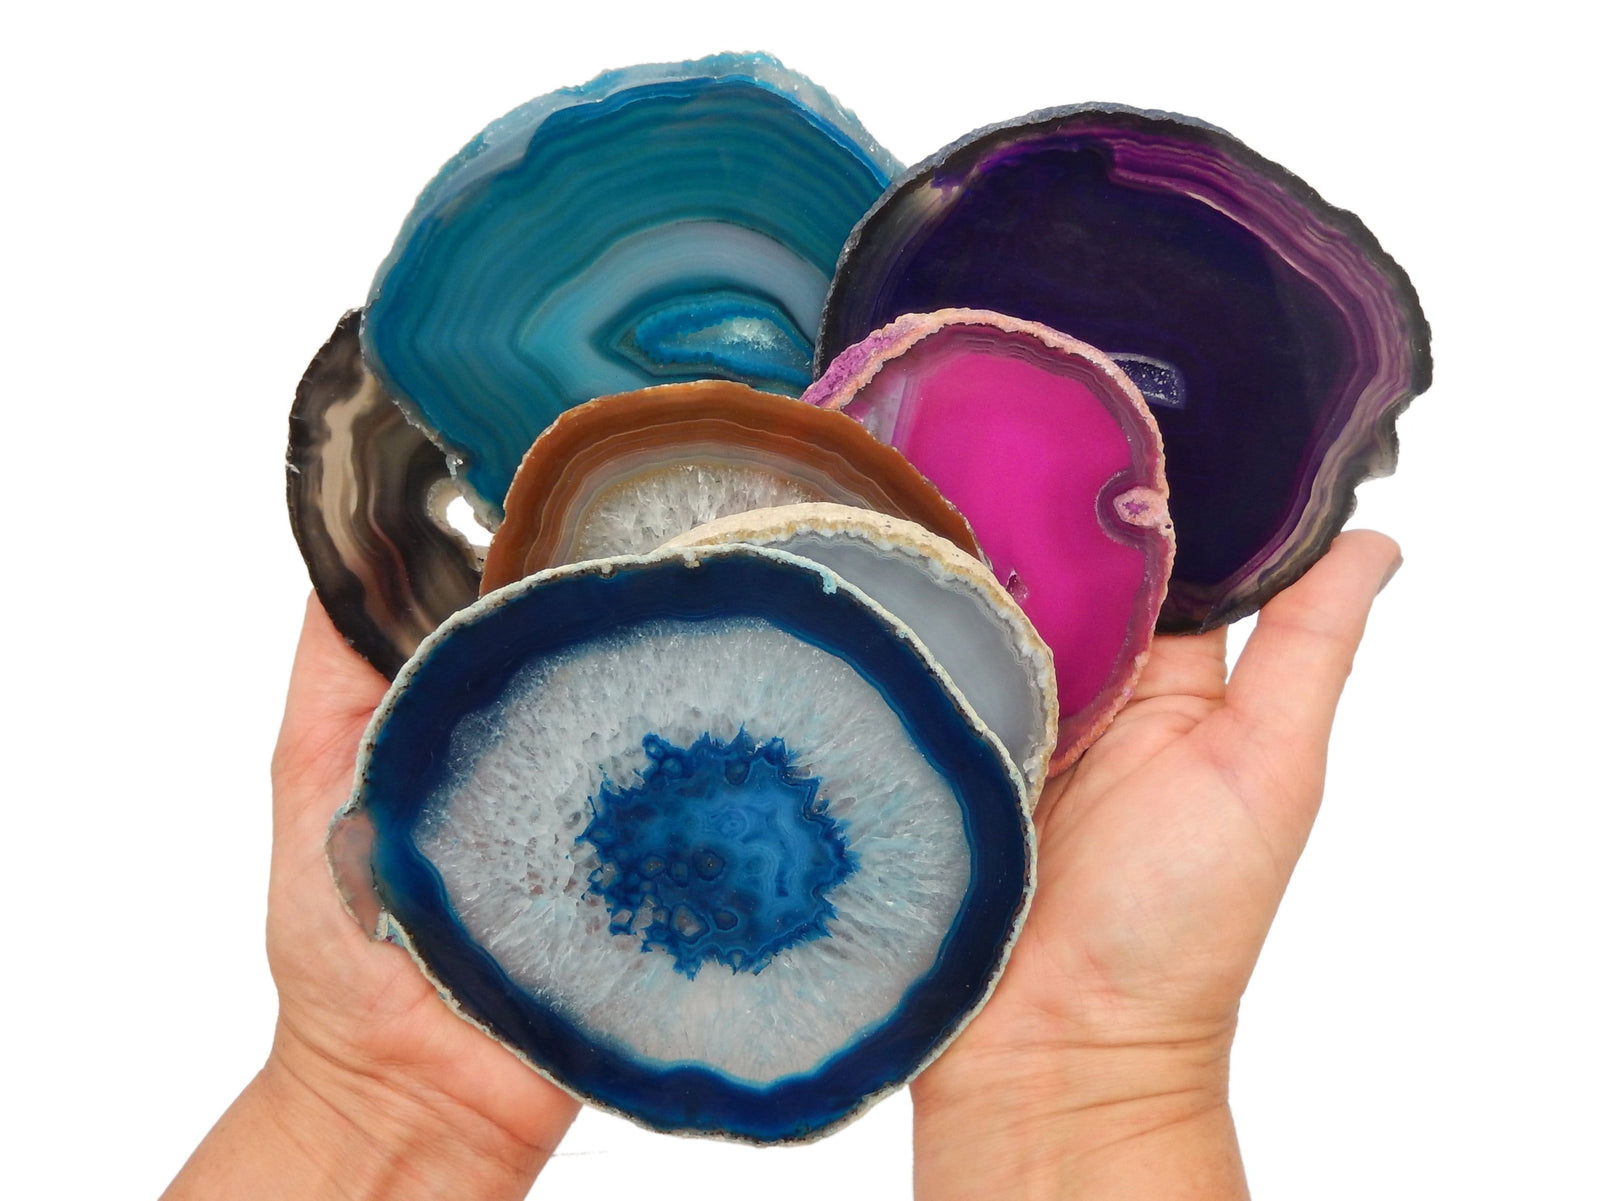 Agate Slices - Blue Agate Slice - Agate Slices #5 - Great For Coasters And Home Decor (AGBS)